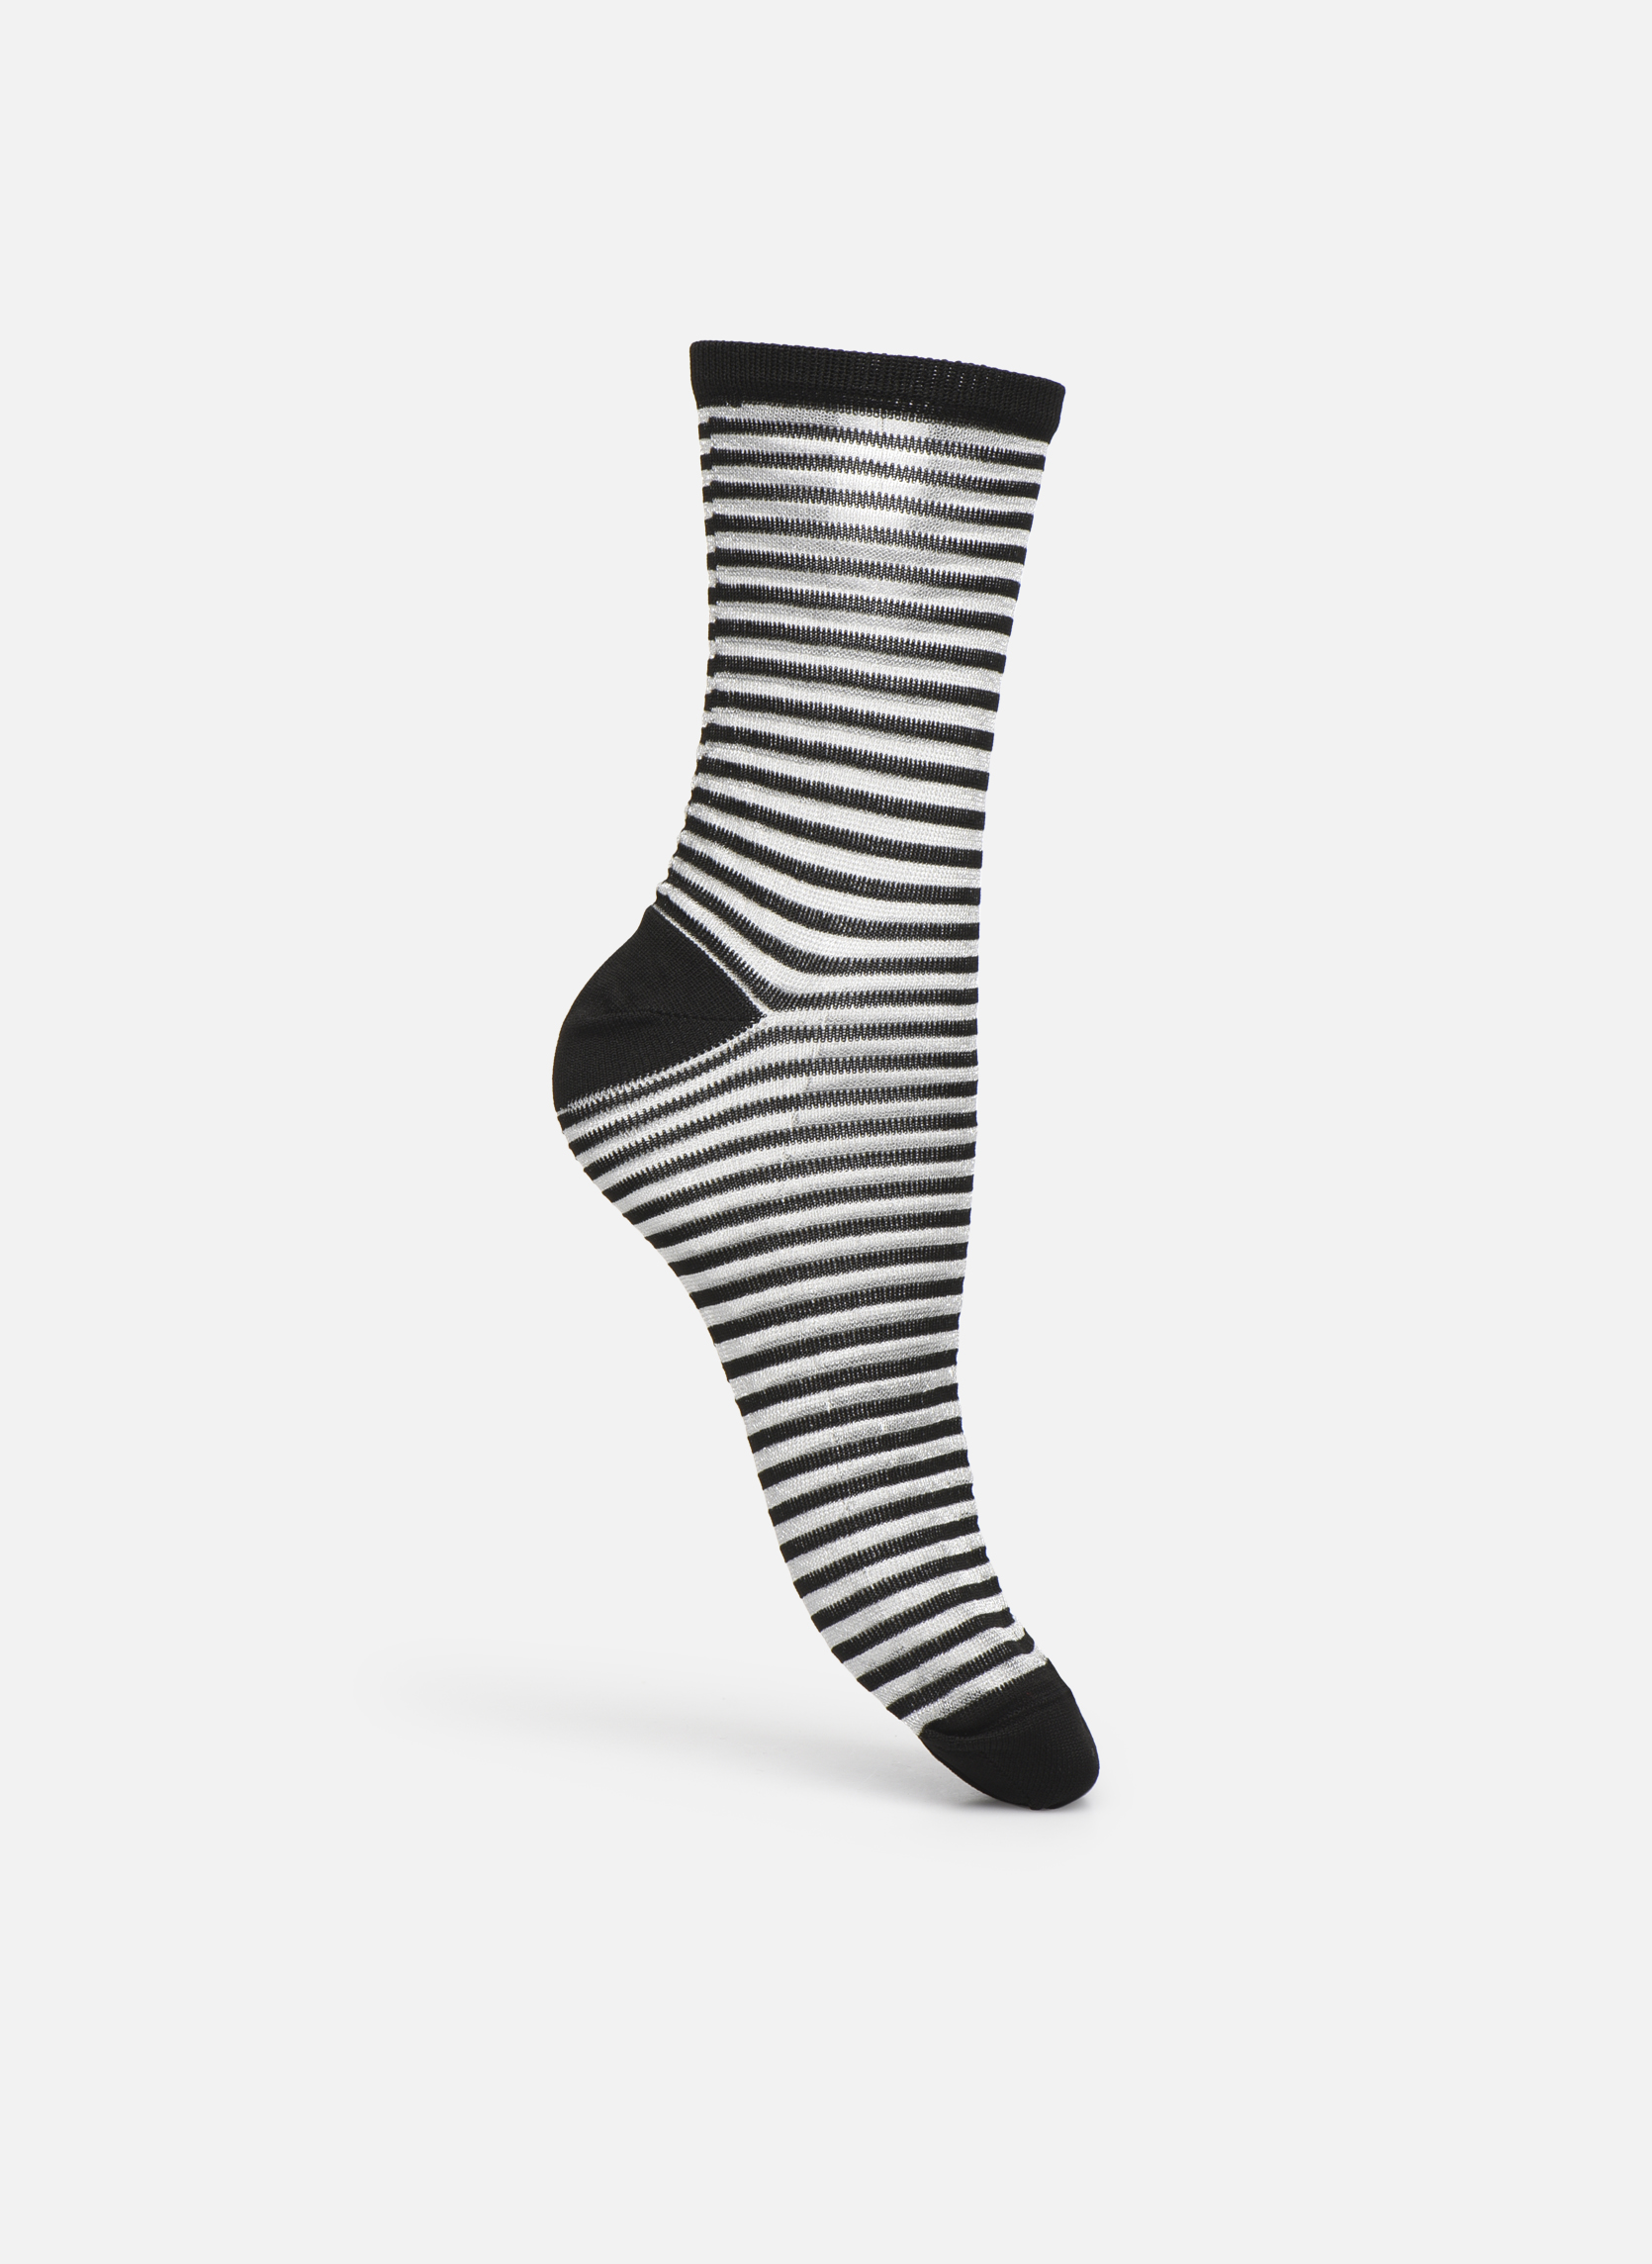 Socks & tights Accessories Chaussettes transparente Femme